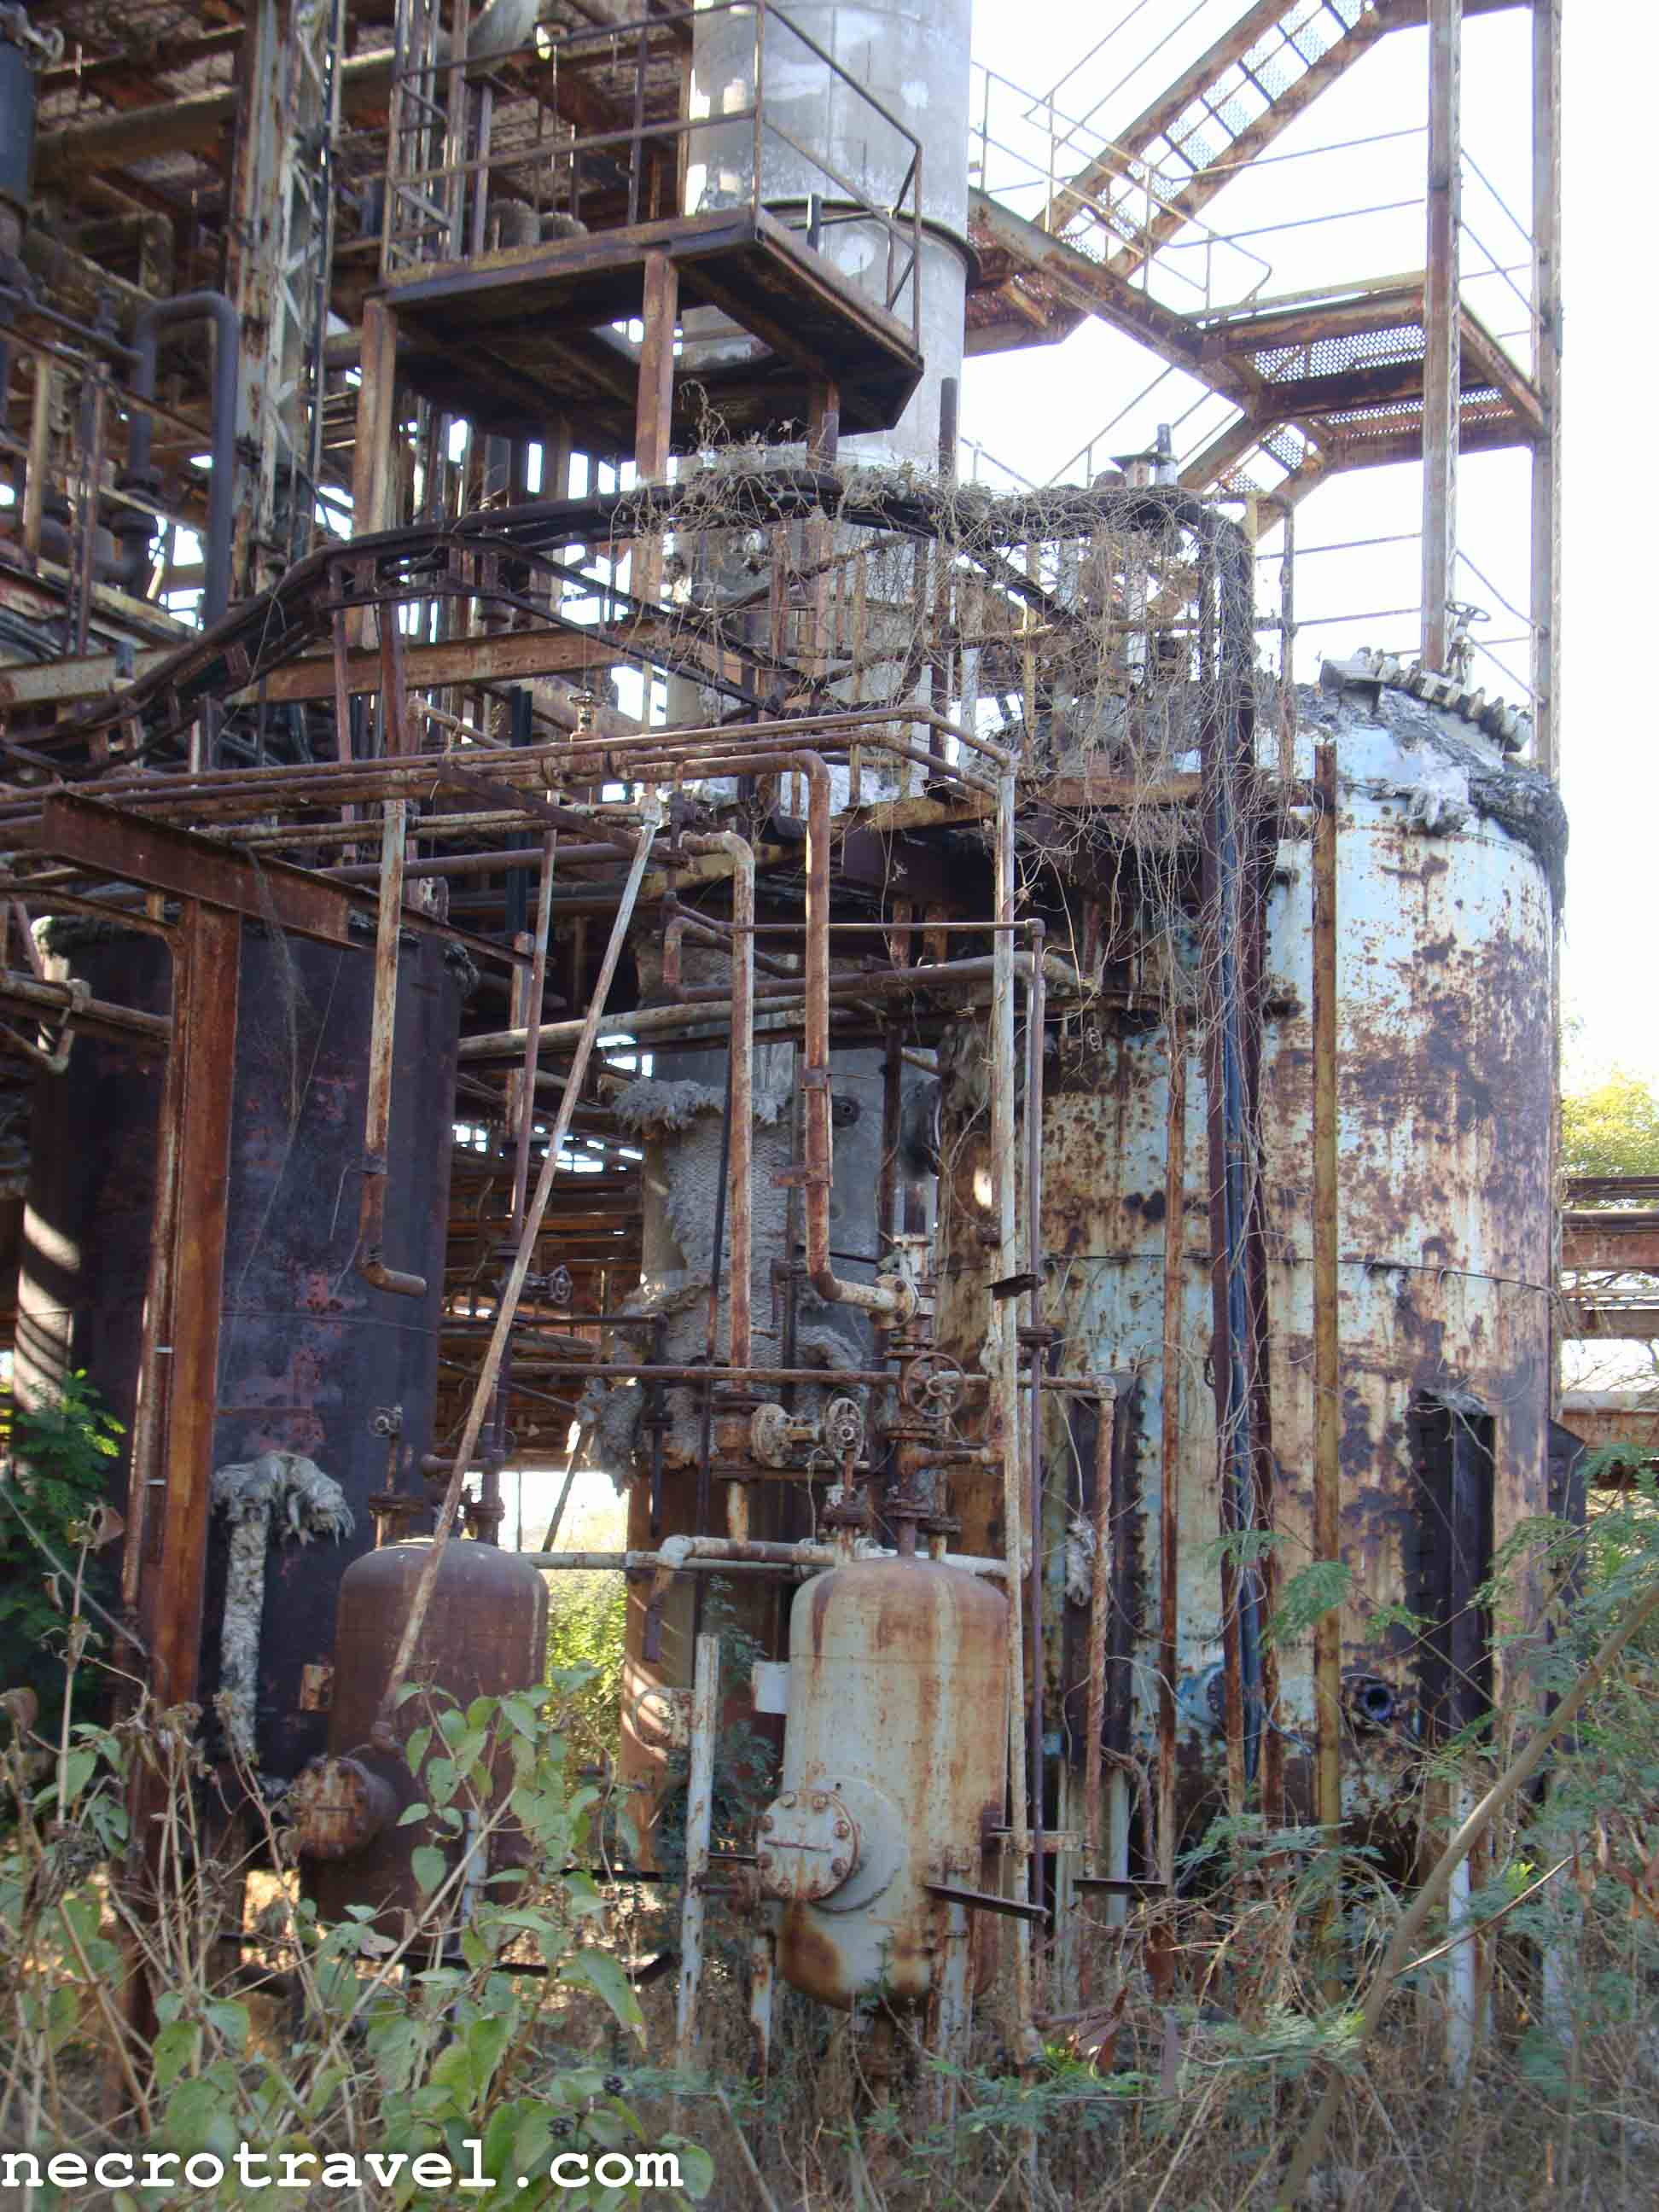 bhopal plant disaster On december 3, 1984, a union carbide corporation plant in bhopal leaked 32 tons of toxic methyl isocyanate gas, leading to the bhopal disaster.